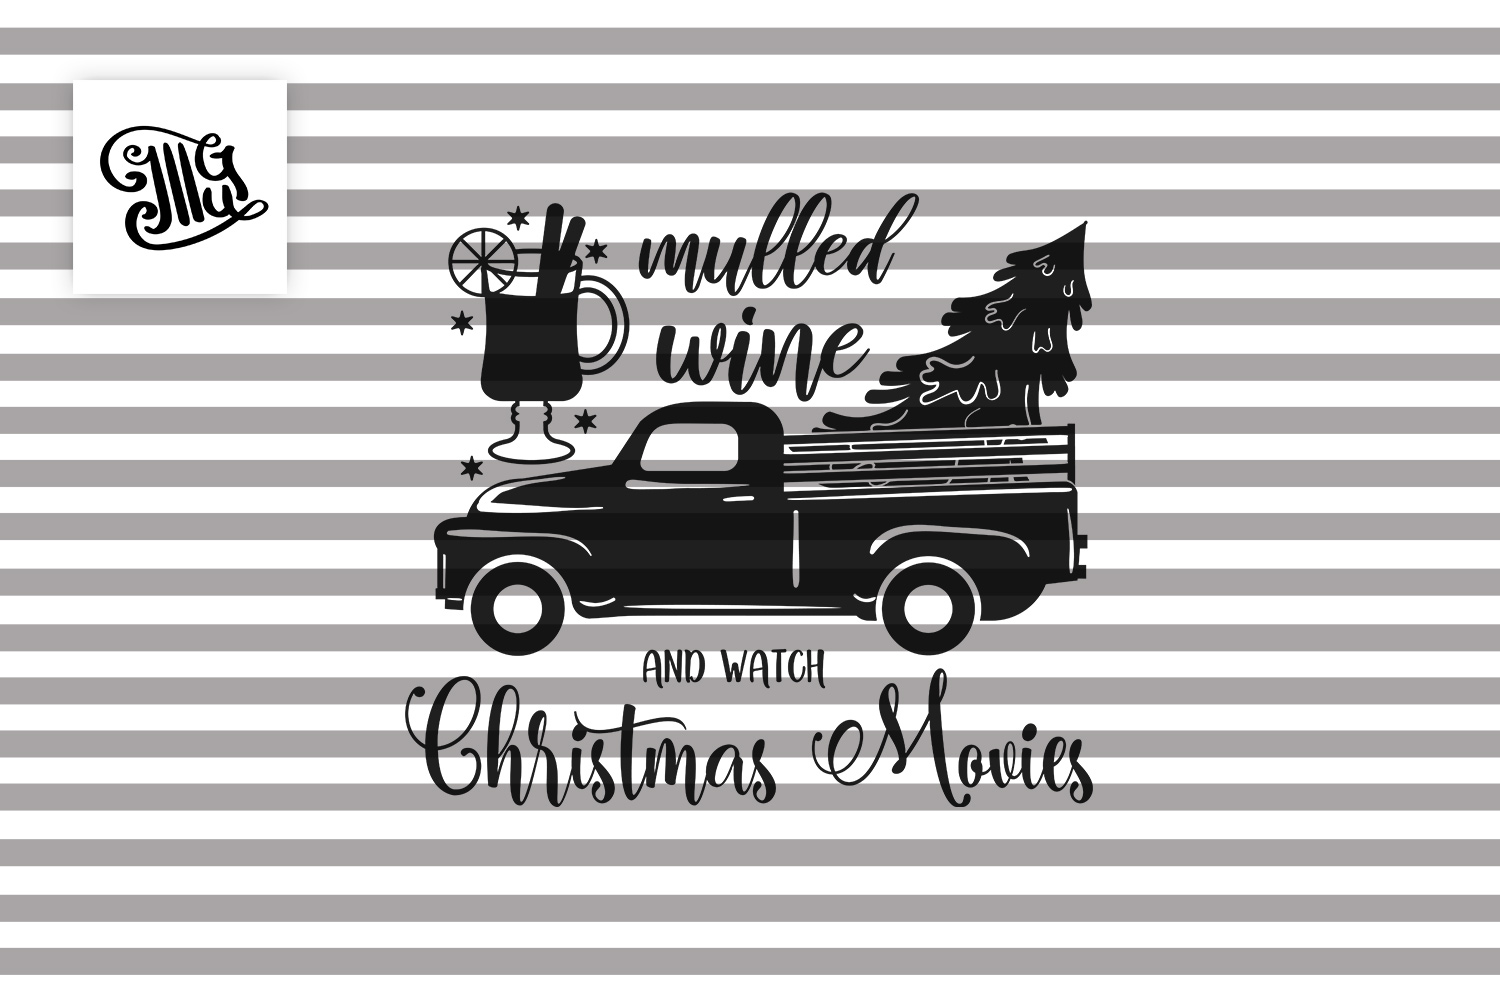 Mulled wine and Christmas movies - Christmas wine example image 2